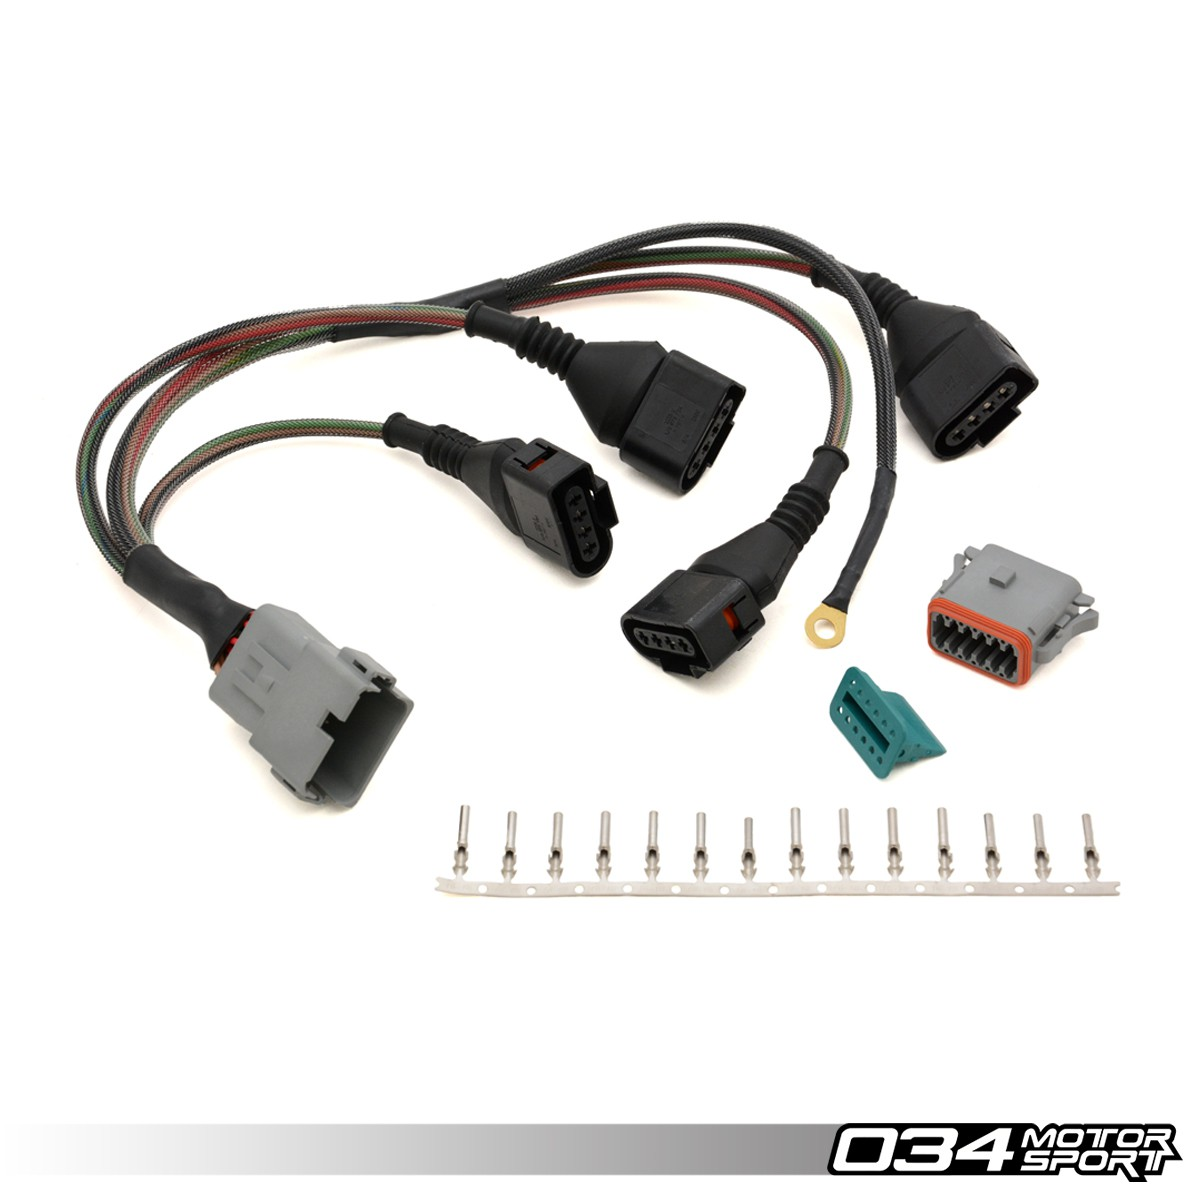 repair update harness audi volkswagen 18t with 4 wire coils 034motorsport 034 701 0004 2 repair update harness, audi volkswagen 1 8t with 4 wire coils how to repair wire harness connector at couponss.co